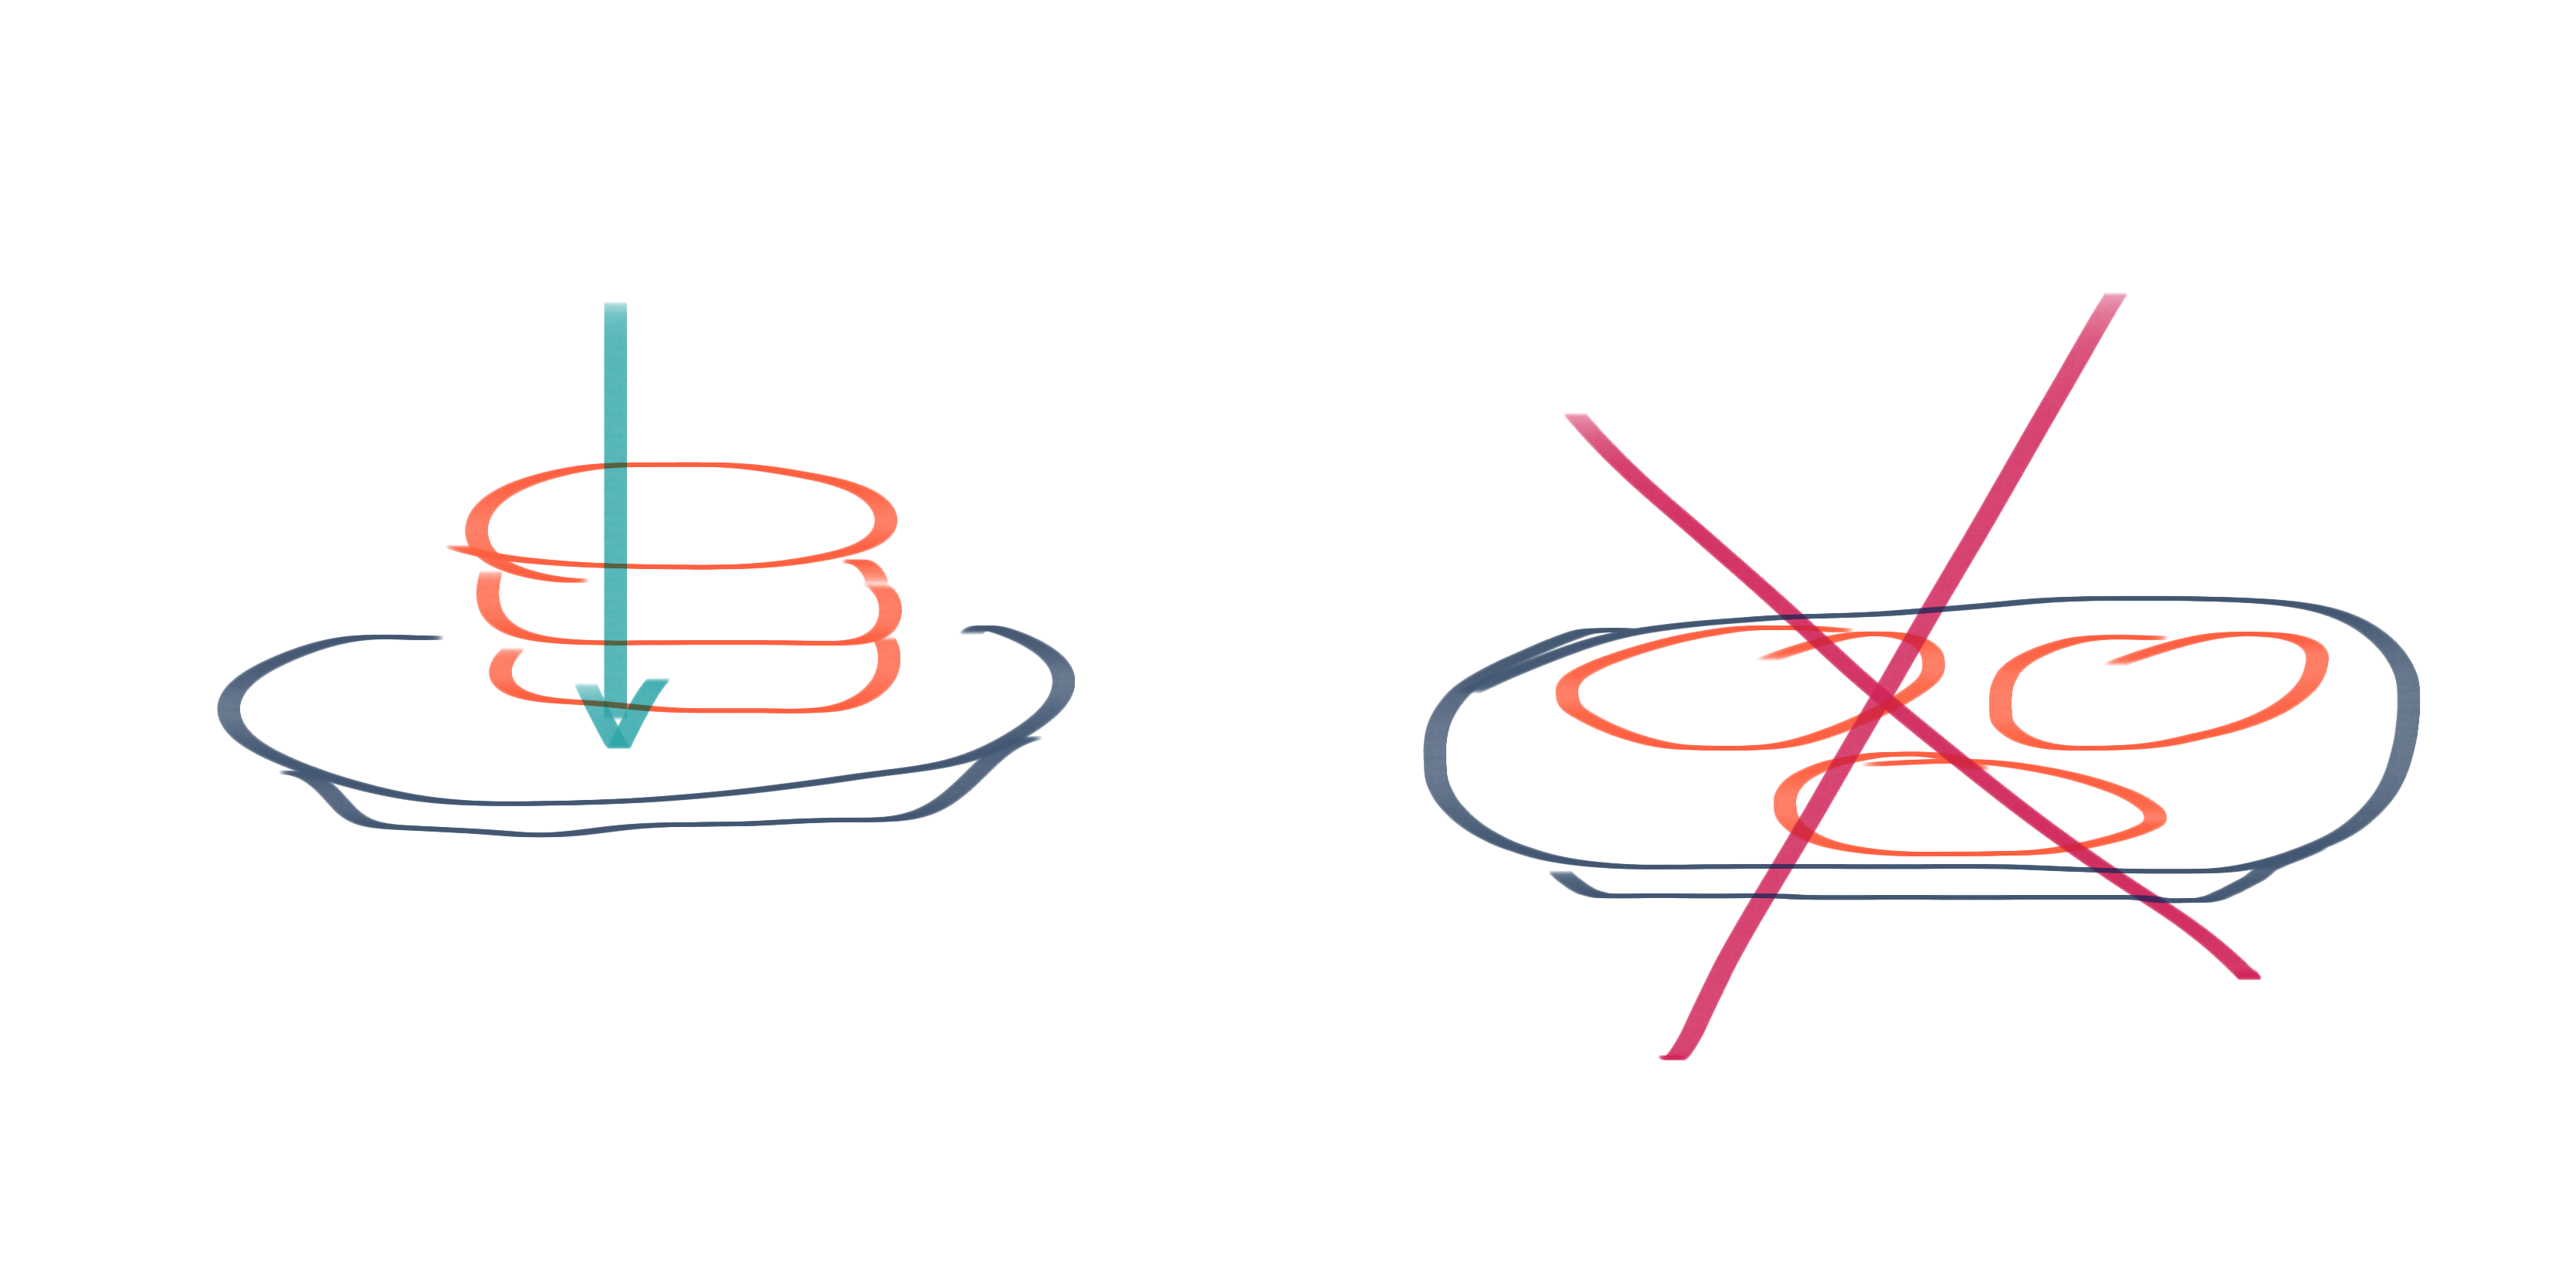 Two images. Left has three pancakes on a plate with an arrow cutting through all three. Right image has three separate pancakes flat on the plate with red X across them.